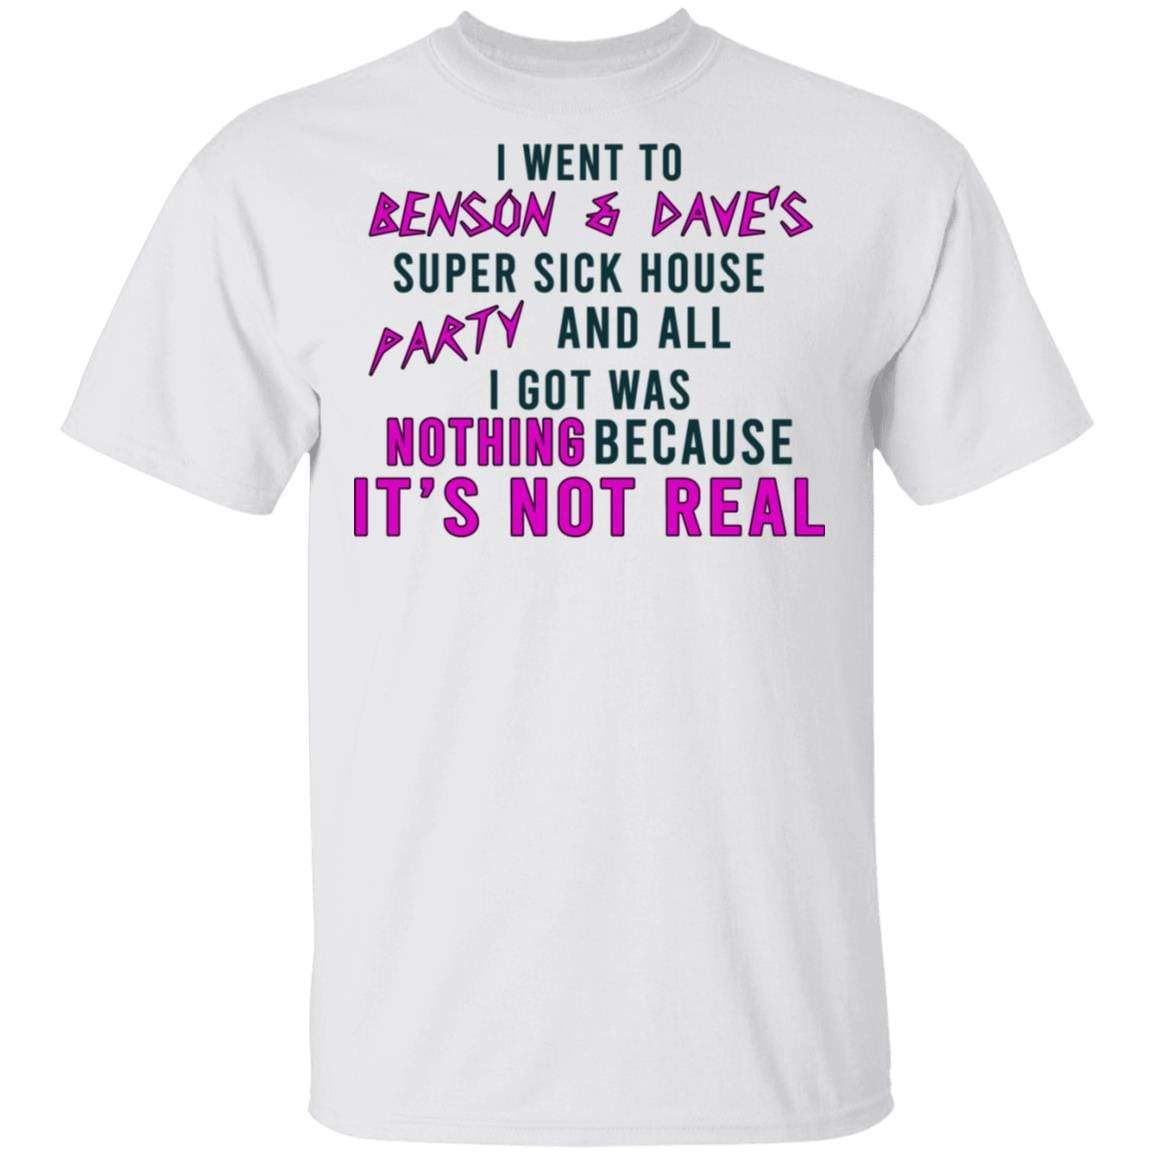 I Went To Benson & Dave's Super Sick House Party And All I Got Was Nothing Because It's Not Real T-Shirts, Hoodies 1049-9974-87390858-48300 - Tee Ript